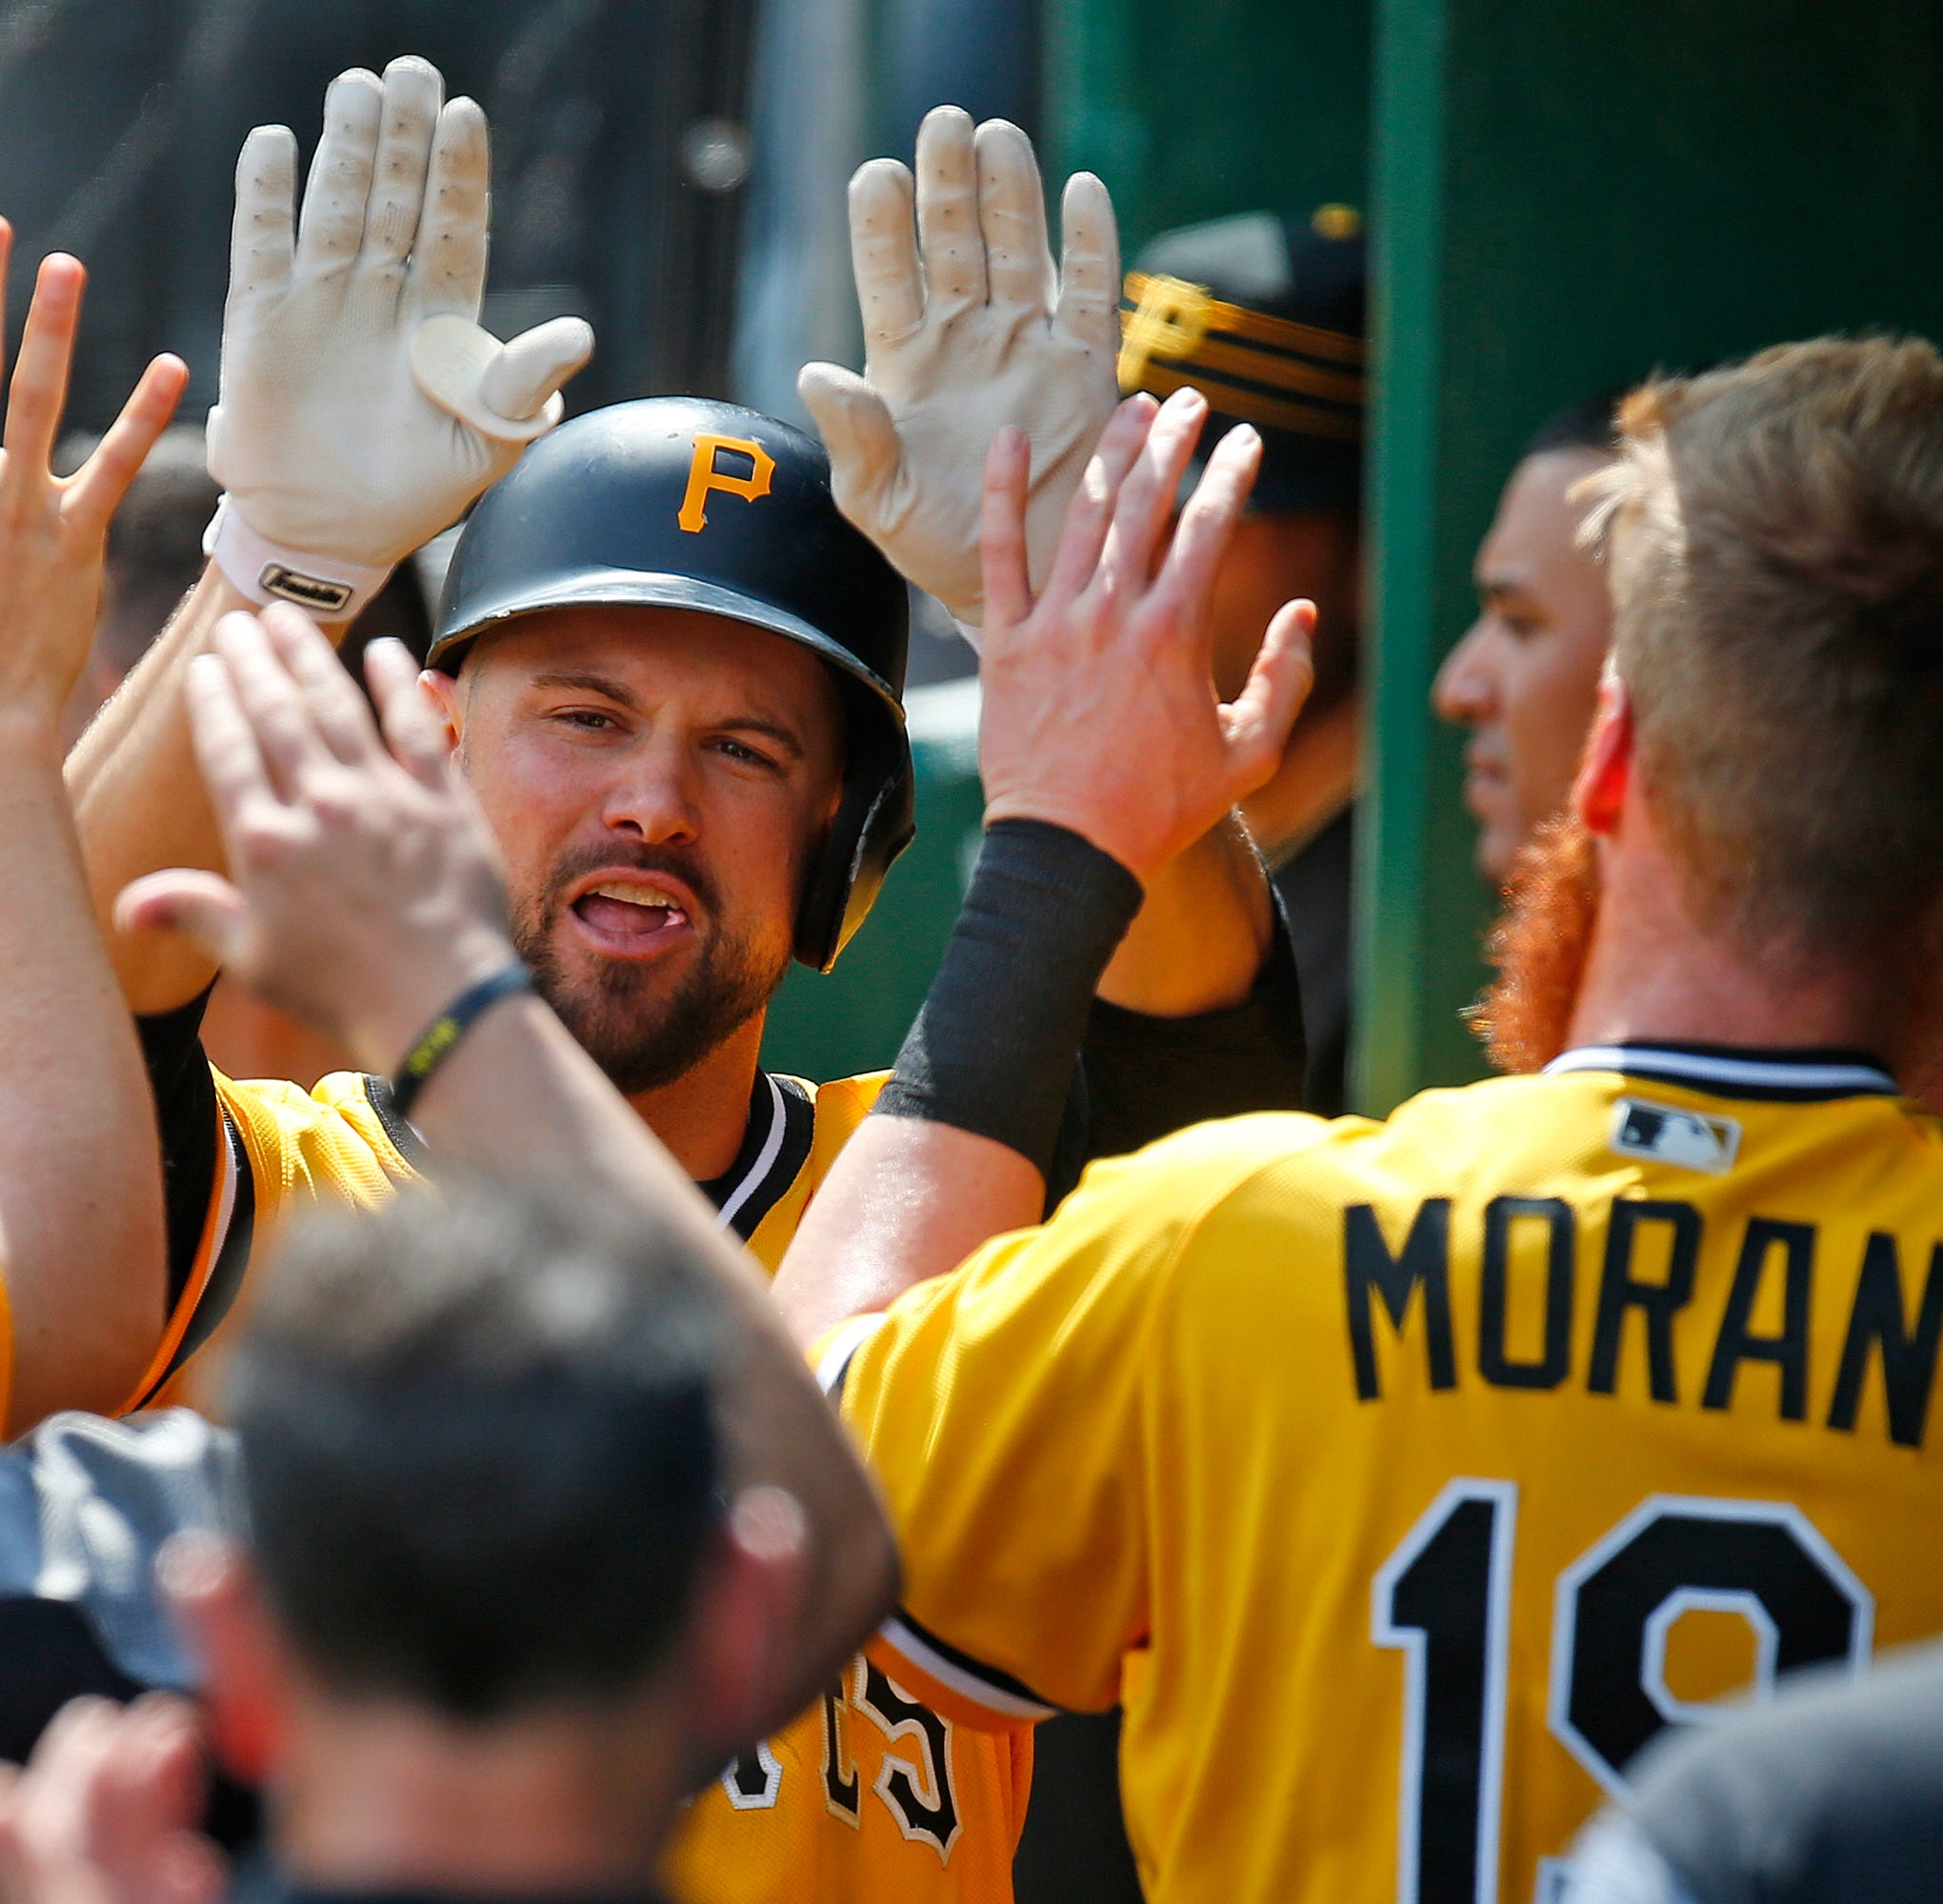 Tigers sign Jordy Mercer, expect him to provide stability, leadership